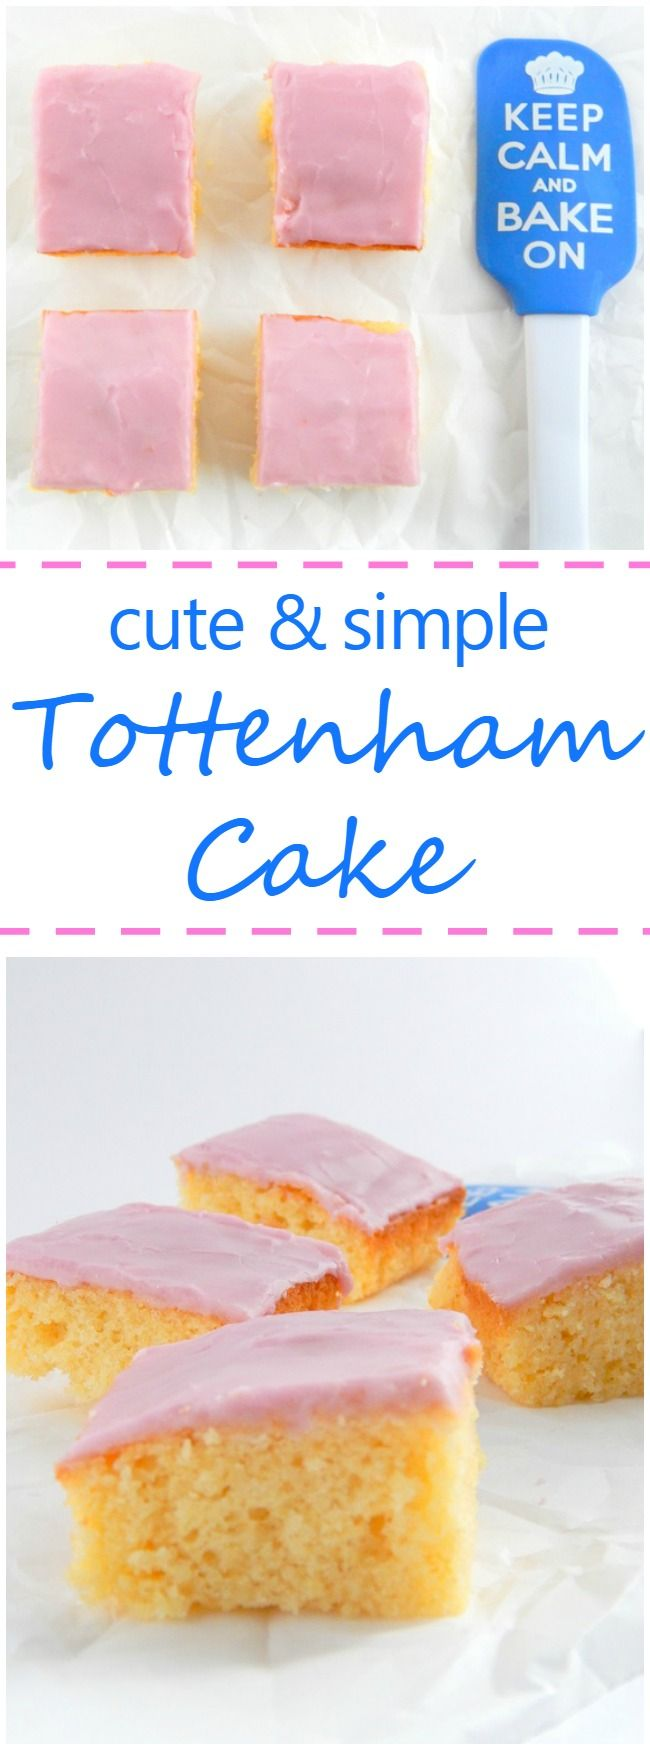 Inspired by the Great British Bake Off, this recipe for Tottenham Cake is easy, takes less than an hour, and is perfect for snacking and sharing.